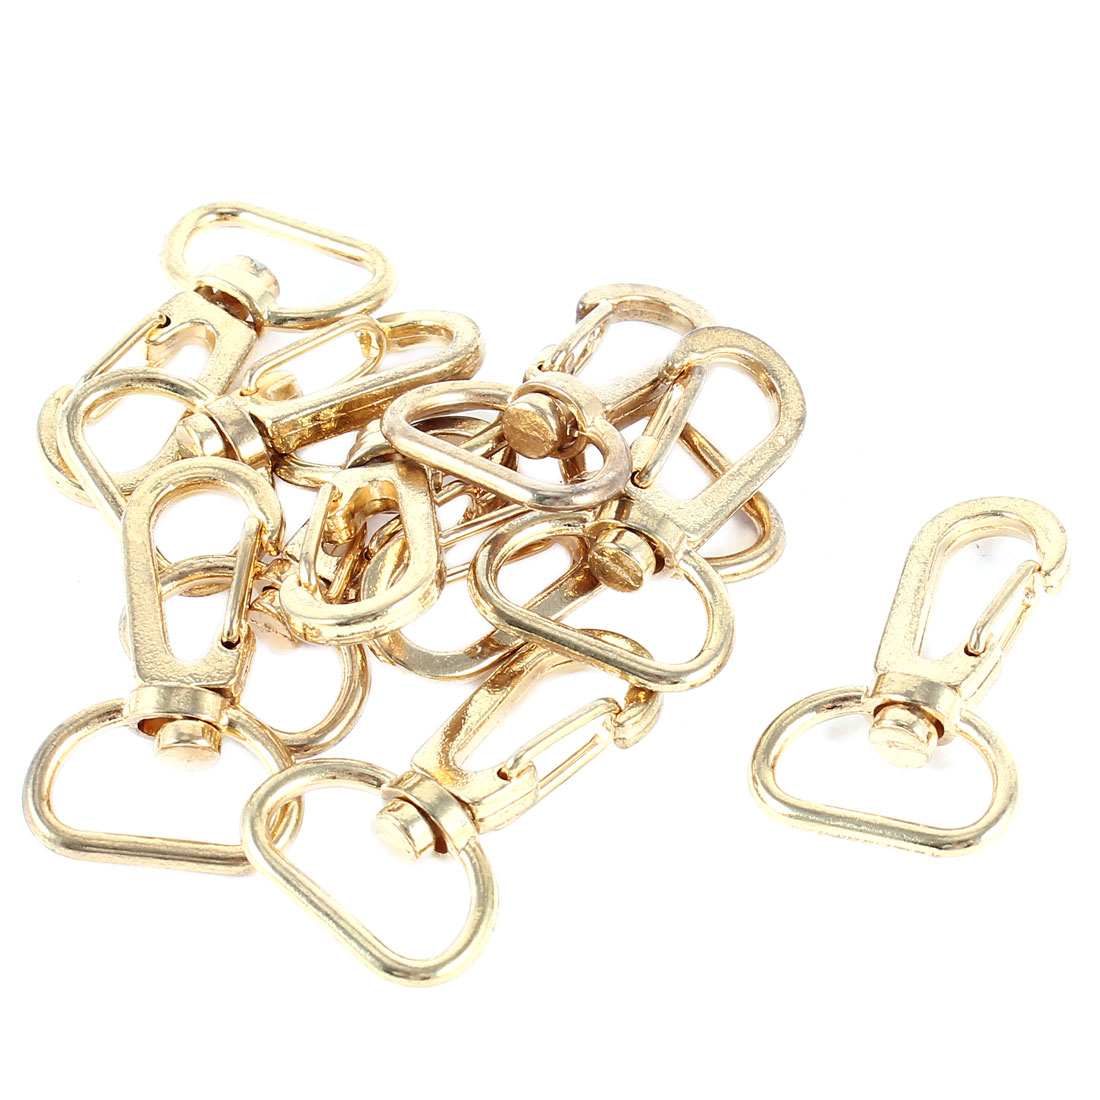 10 Pcs Swivel Lobster Buckle Design Spring Clip Gold Tone Metal Keychain Key Ring